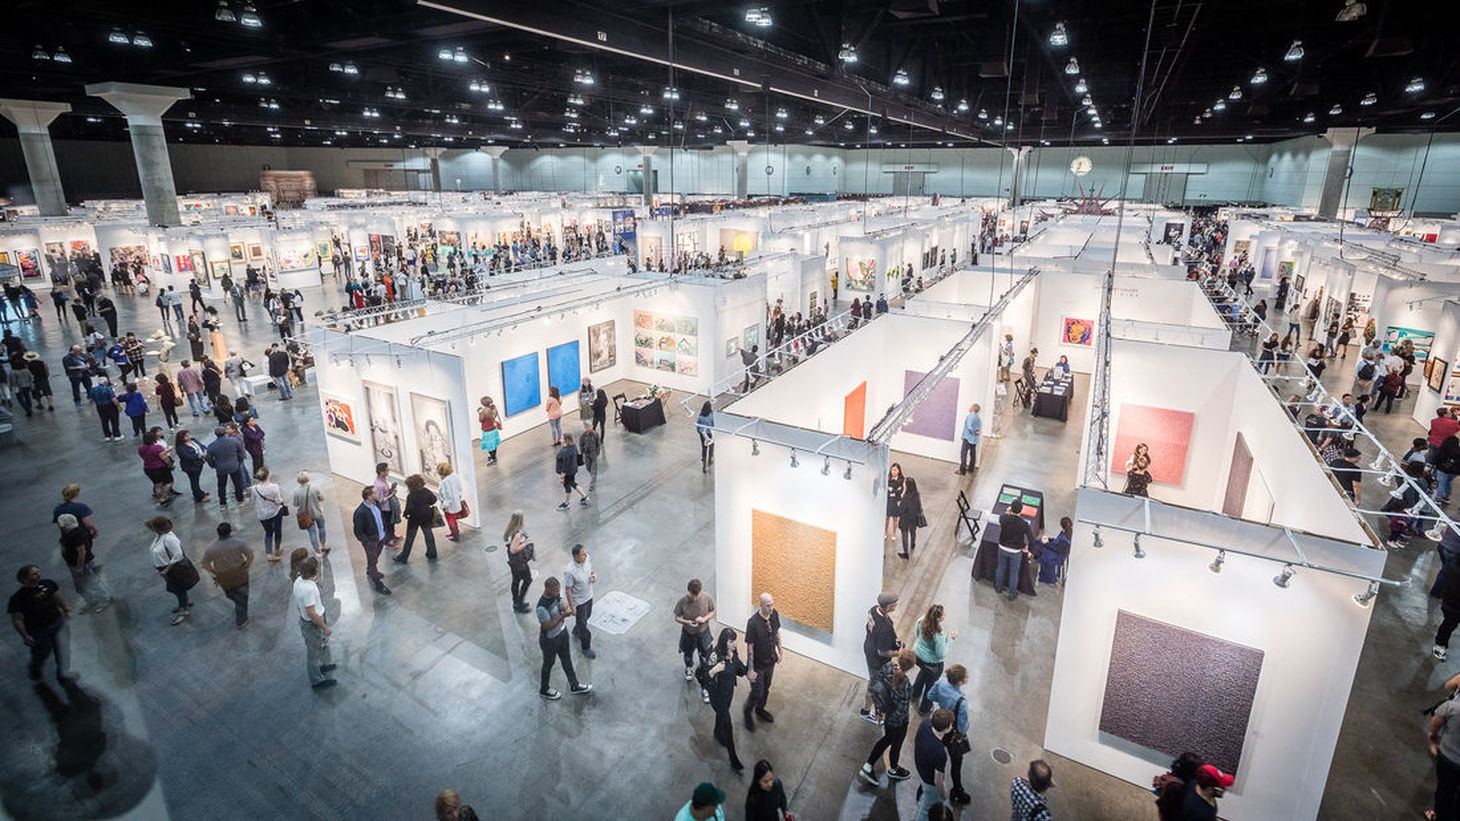 The L.A. Art Show comes to the Los Angeles Convention Center this weekend.